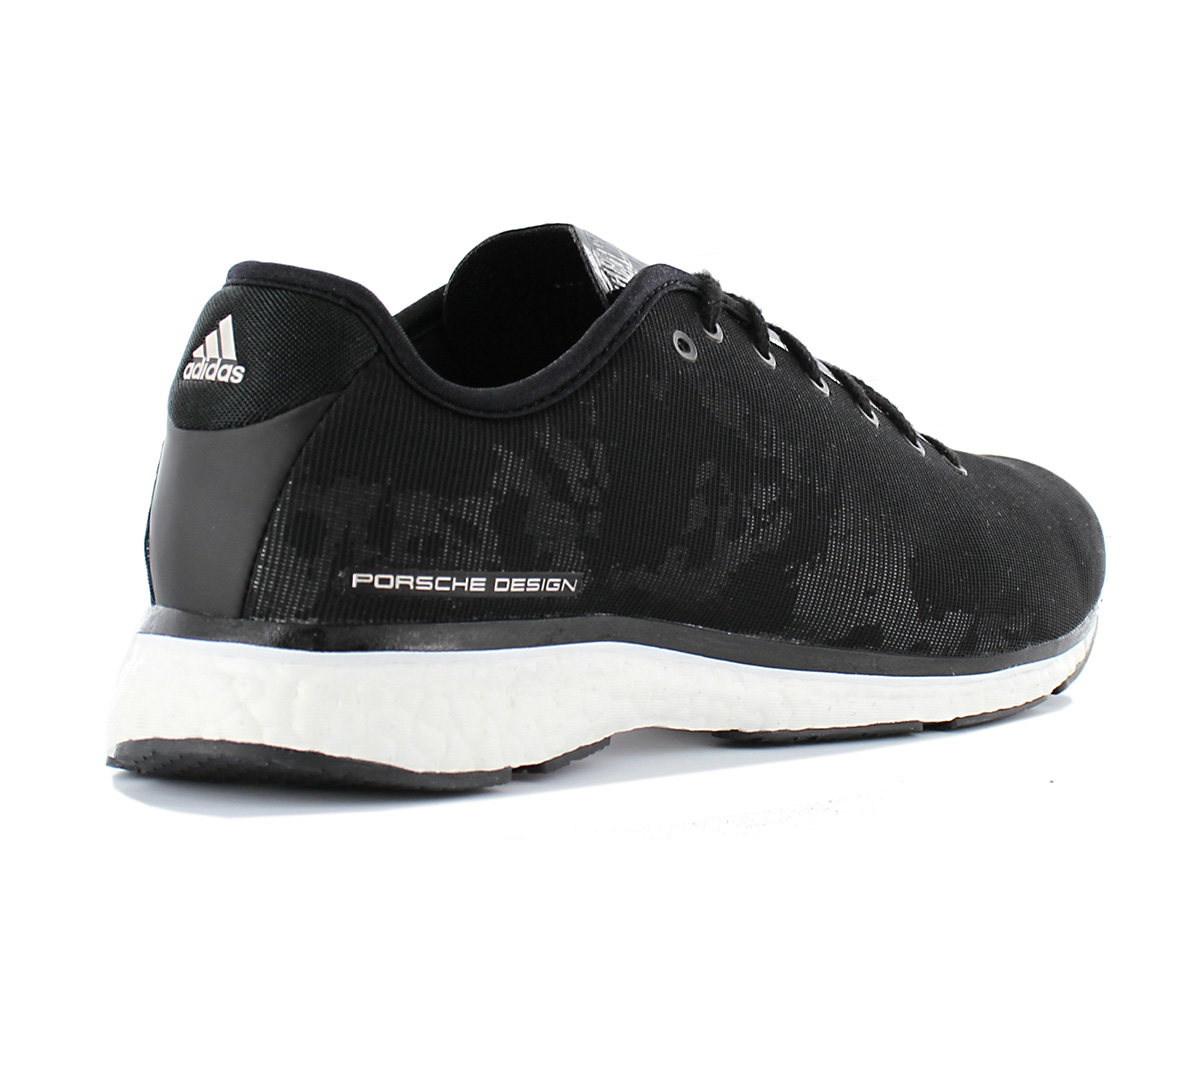 new products 8c2ee 60cd9 ... hot adidas porsche design endurance aq3577 86811 d7dad